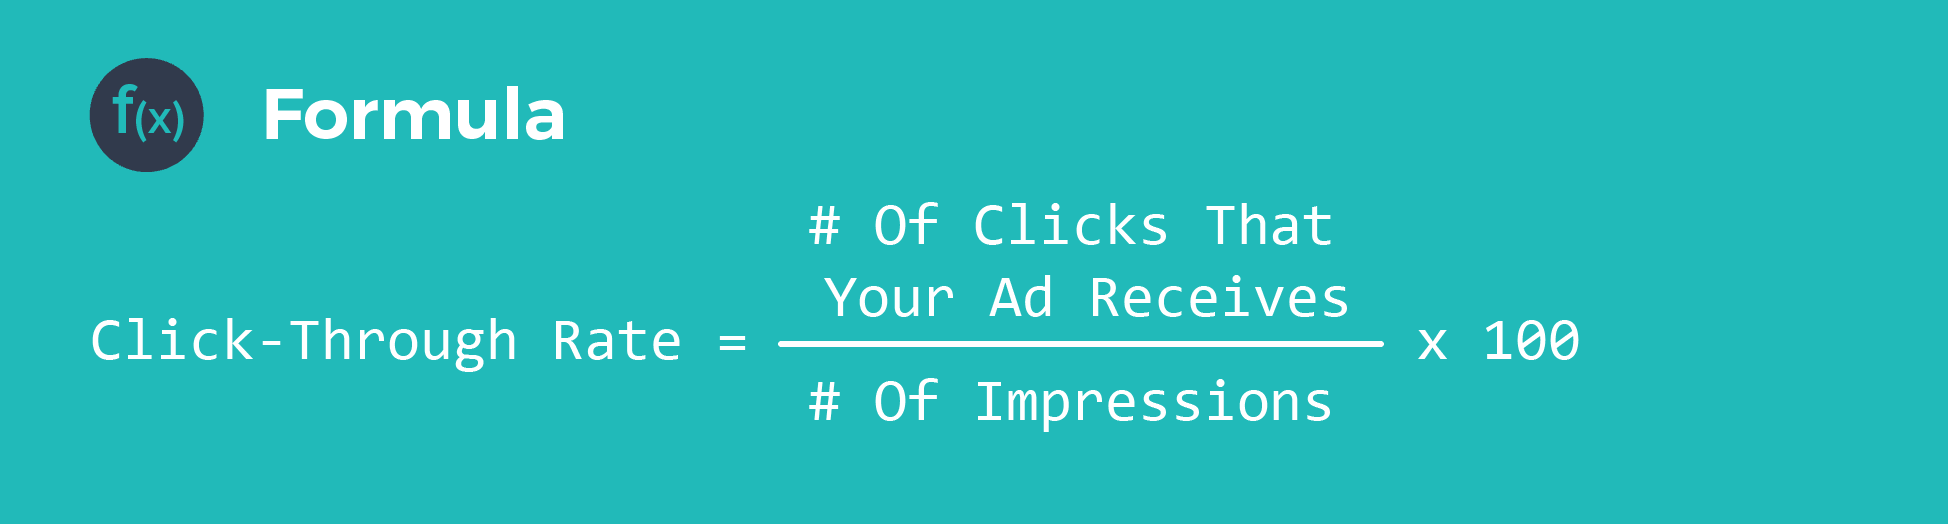 click through rate formula